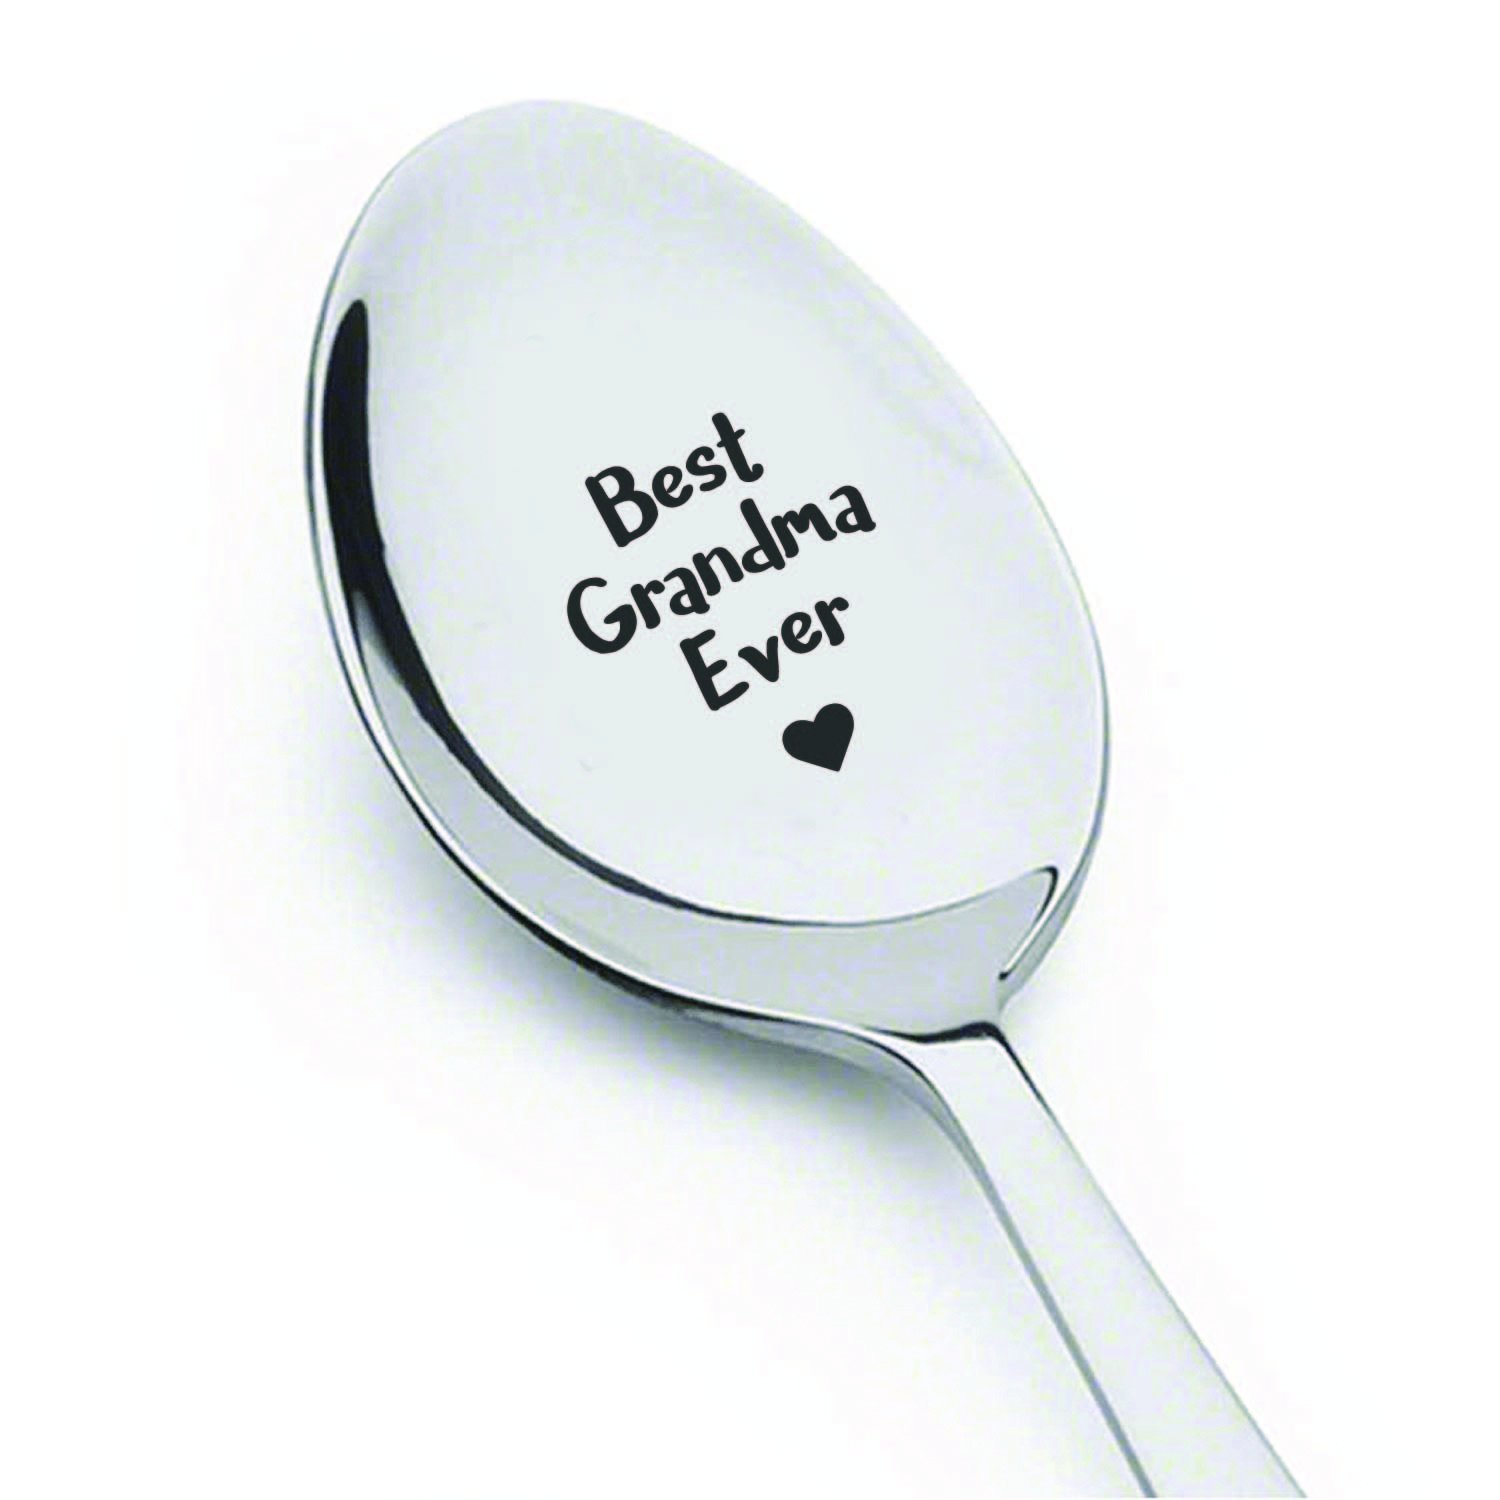 Funny gifts - Best Grandma Ever Spoon - Grandma gift - Gifts for grandma - Best selling items - Grandma to be - Mom gifts - Grandmother of the bride - 7 Inches Boston Creative Company